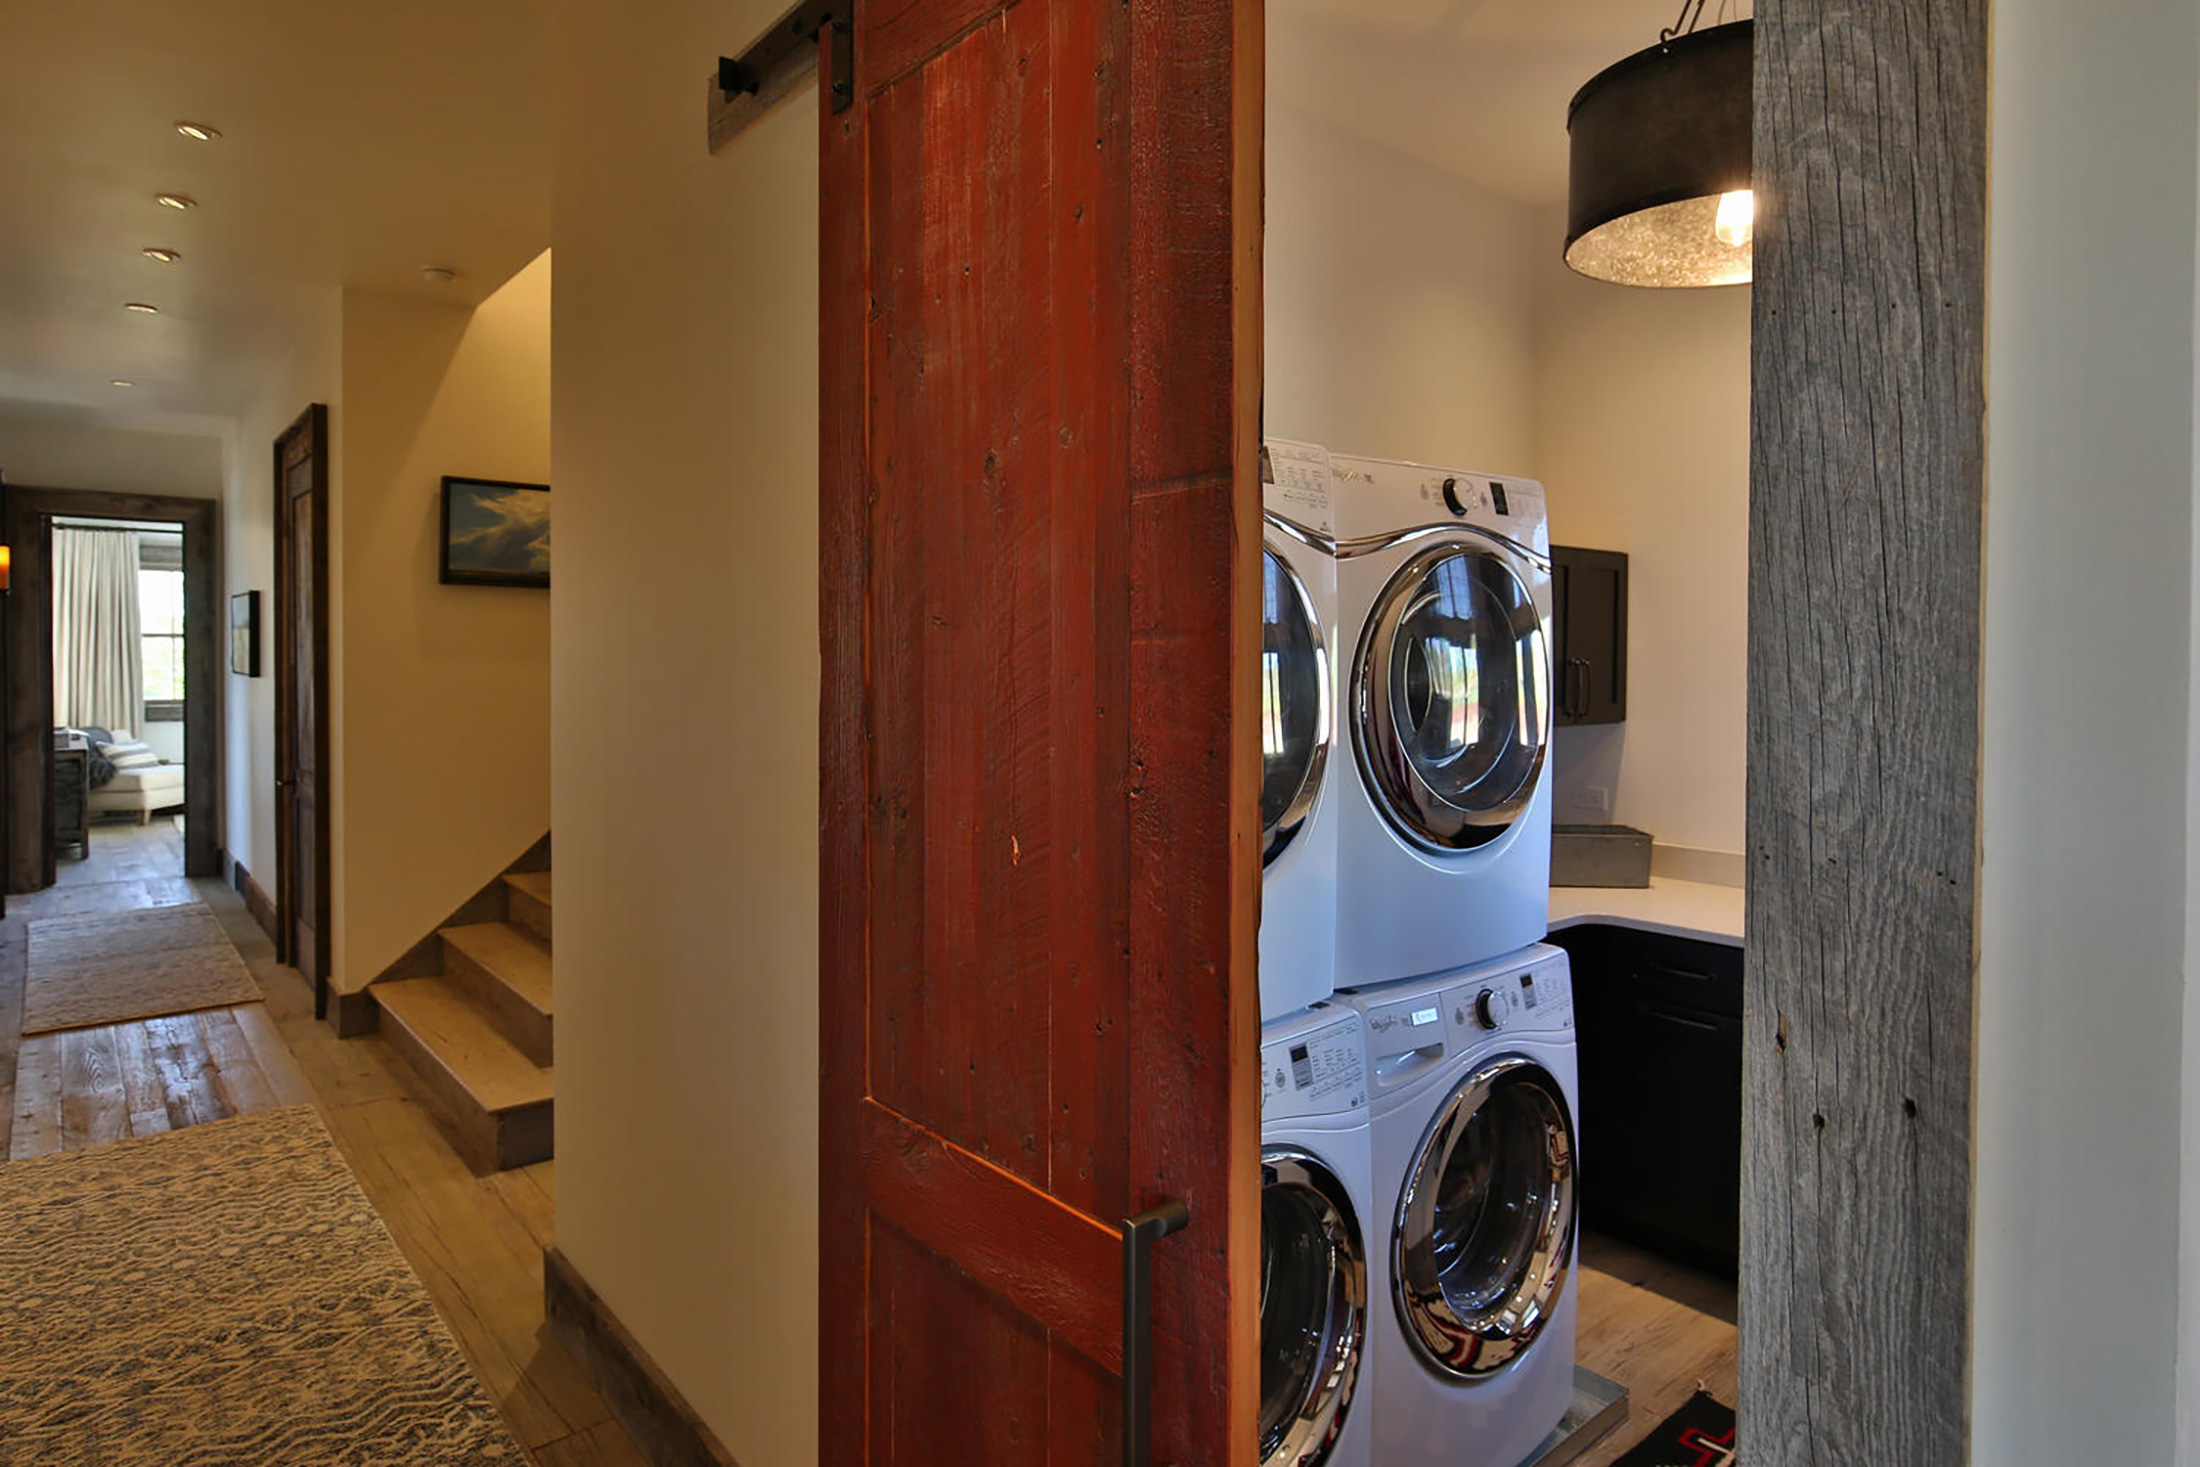 residential getaway 277 Old Armington Rd Lucky Man large 036 18 Laundry With Barn Door 1500x1000 72dpi